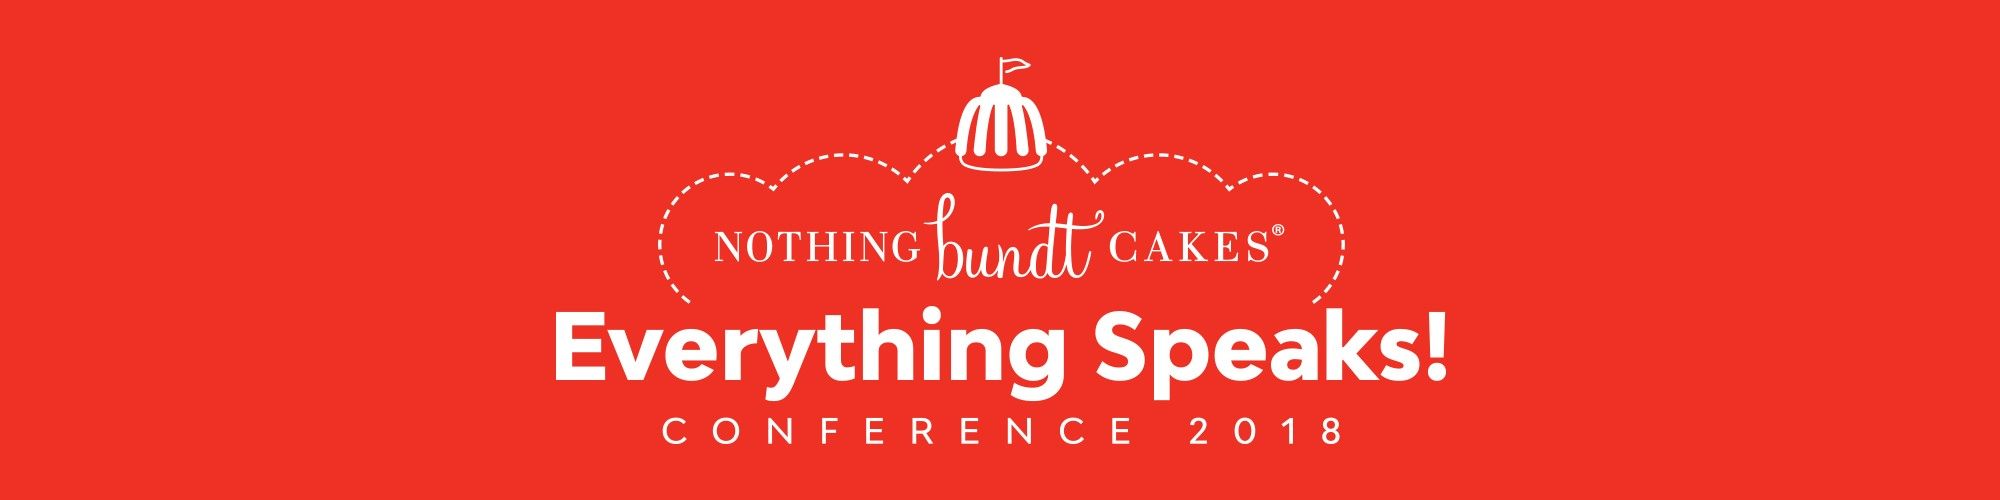 Nothing Bundt Cakes 2018 National Conference